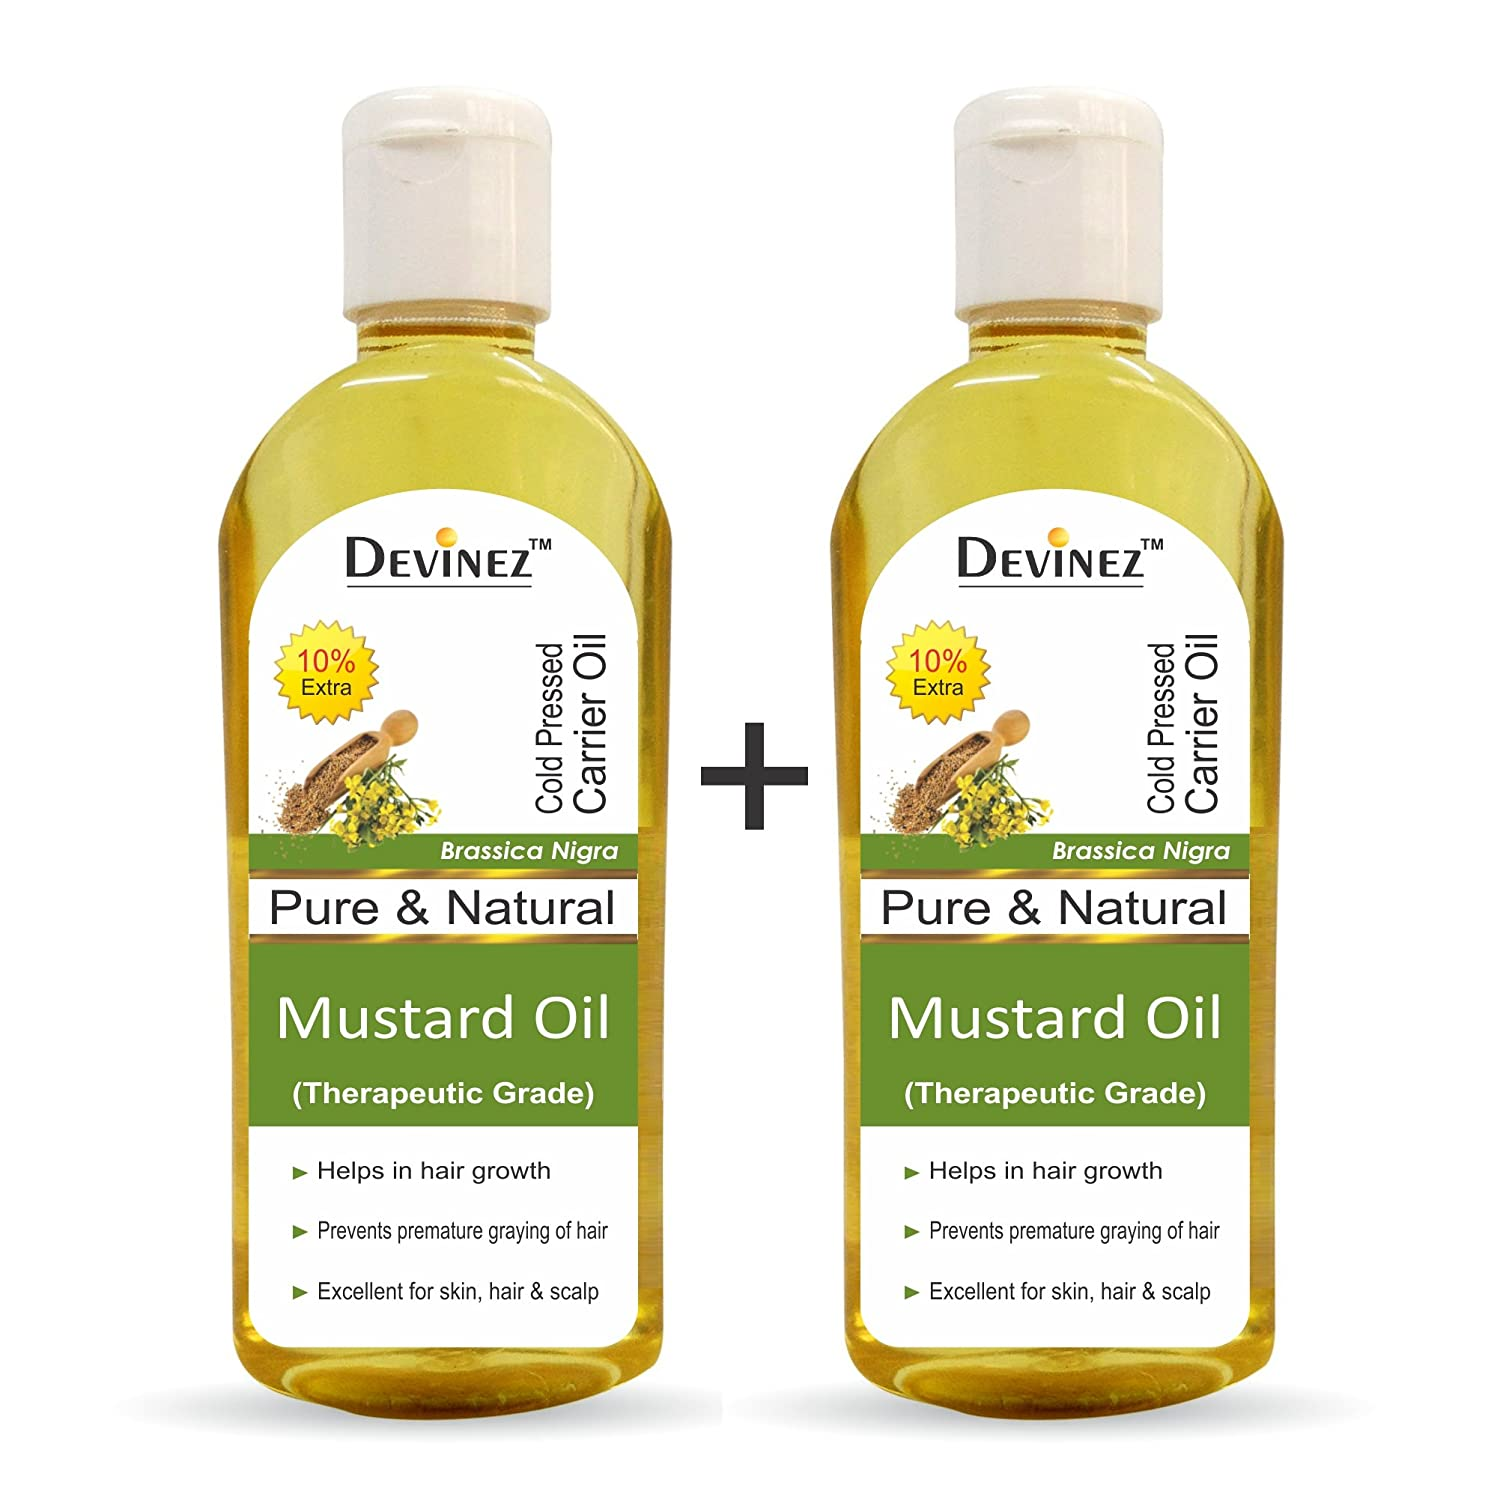 Buy Devinez Mustard Oil 110ml X 2 100 Pure Natural Undiluted Therapeutic Grade Coldpressed Oil For Hair Skin Care Online At Low Prices In India Amazon In